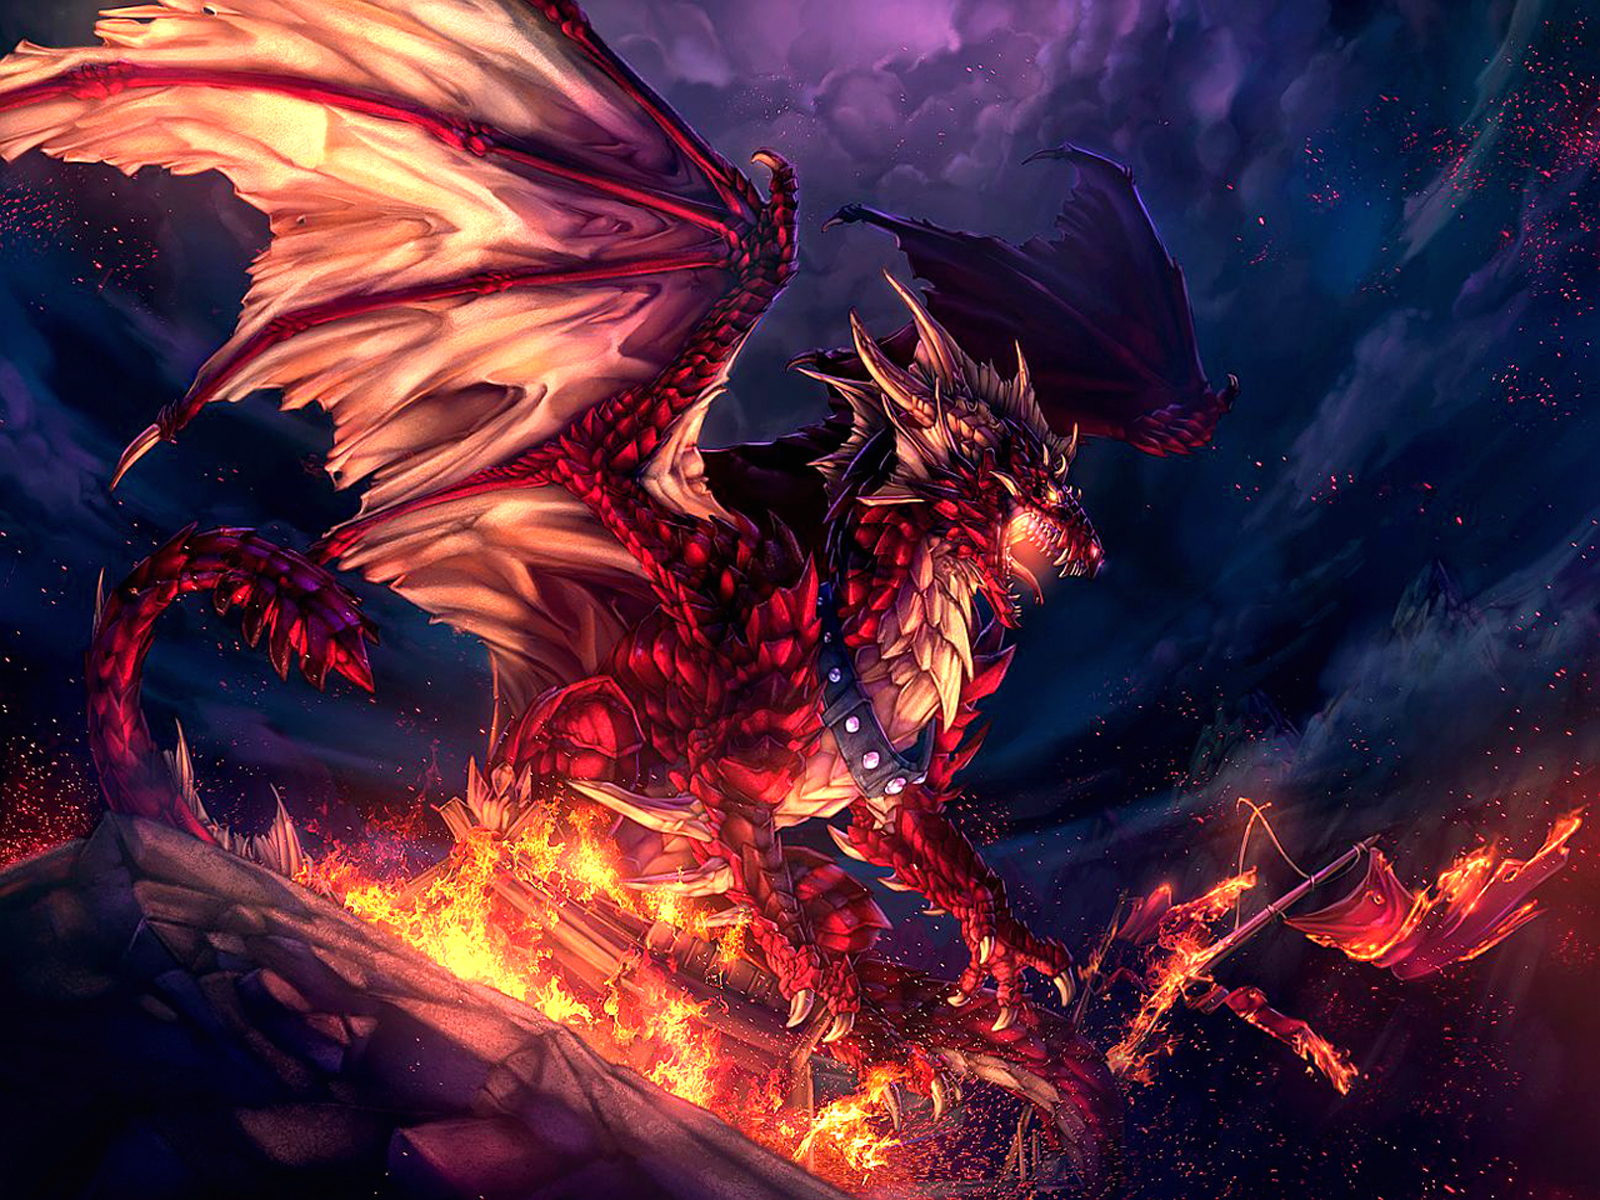 Red Fire Dragon: Wallpaper Proslut: Spectacular Villain Wallpapers In Full HD